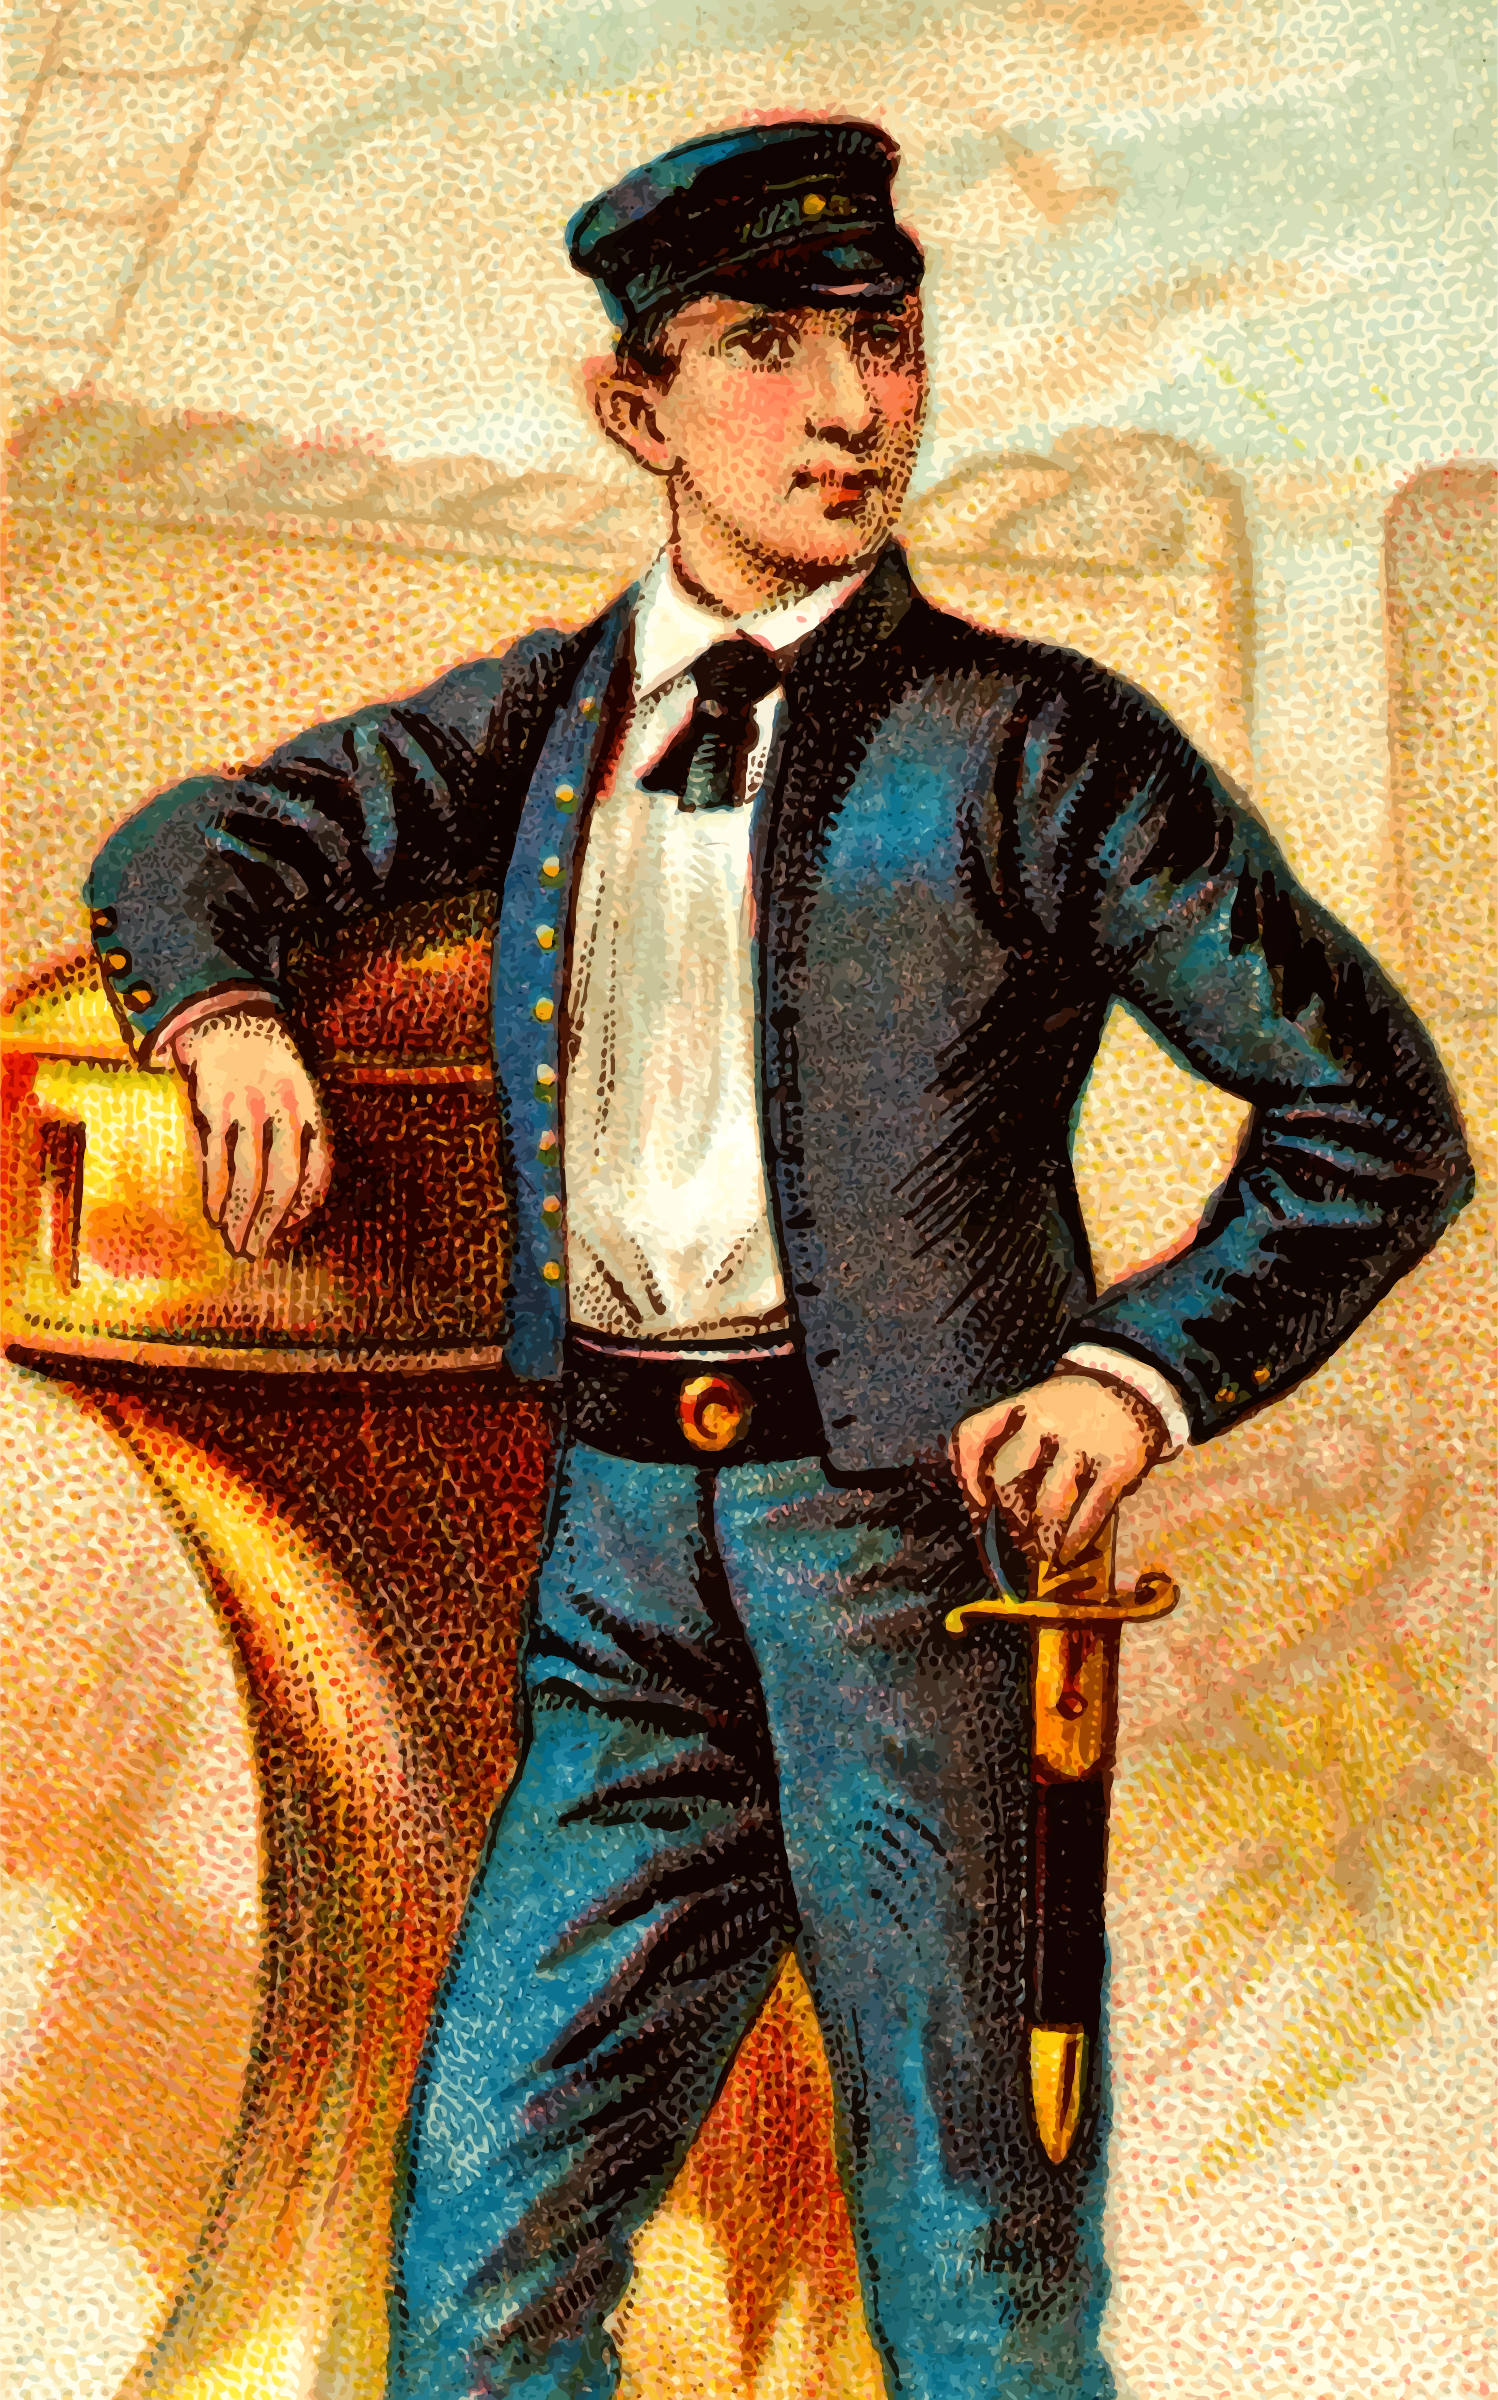 Cigarette card - Midshipman's Dirk by Firkin